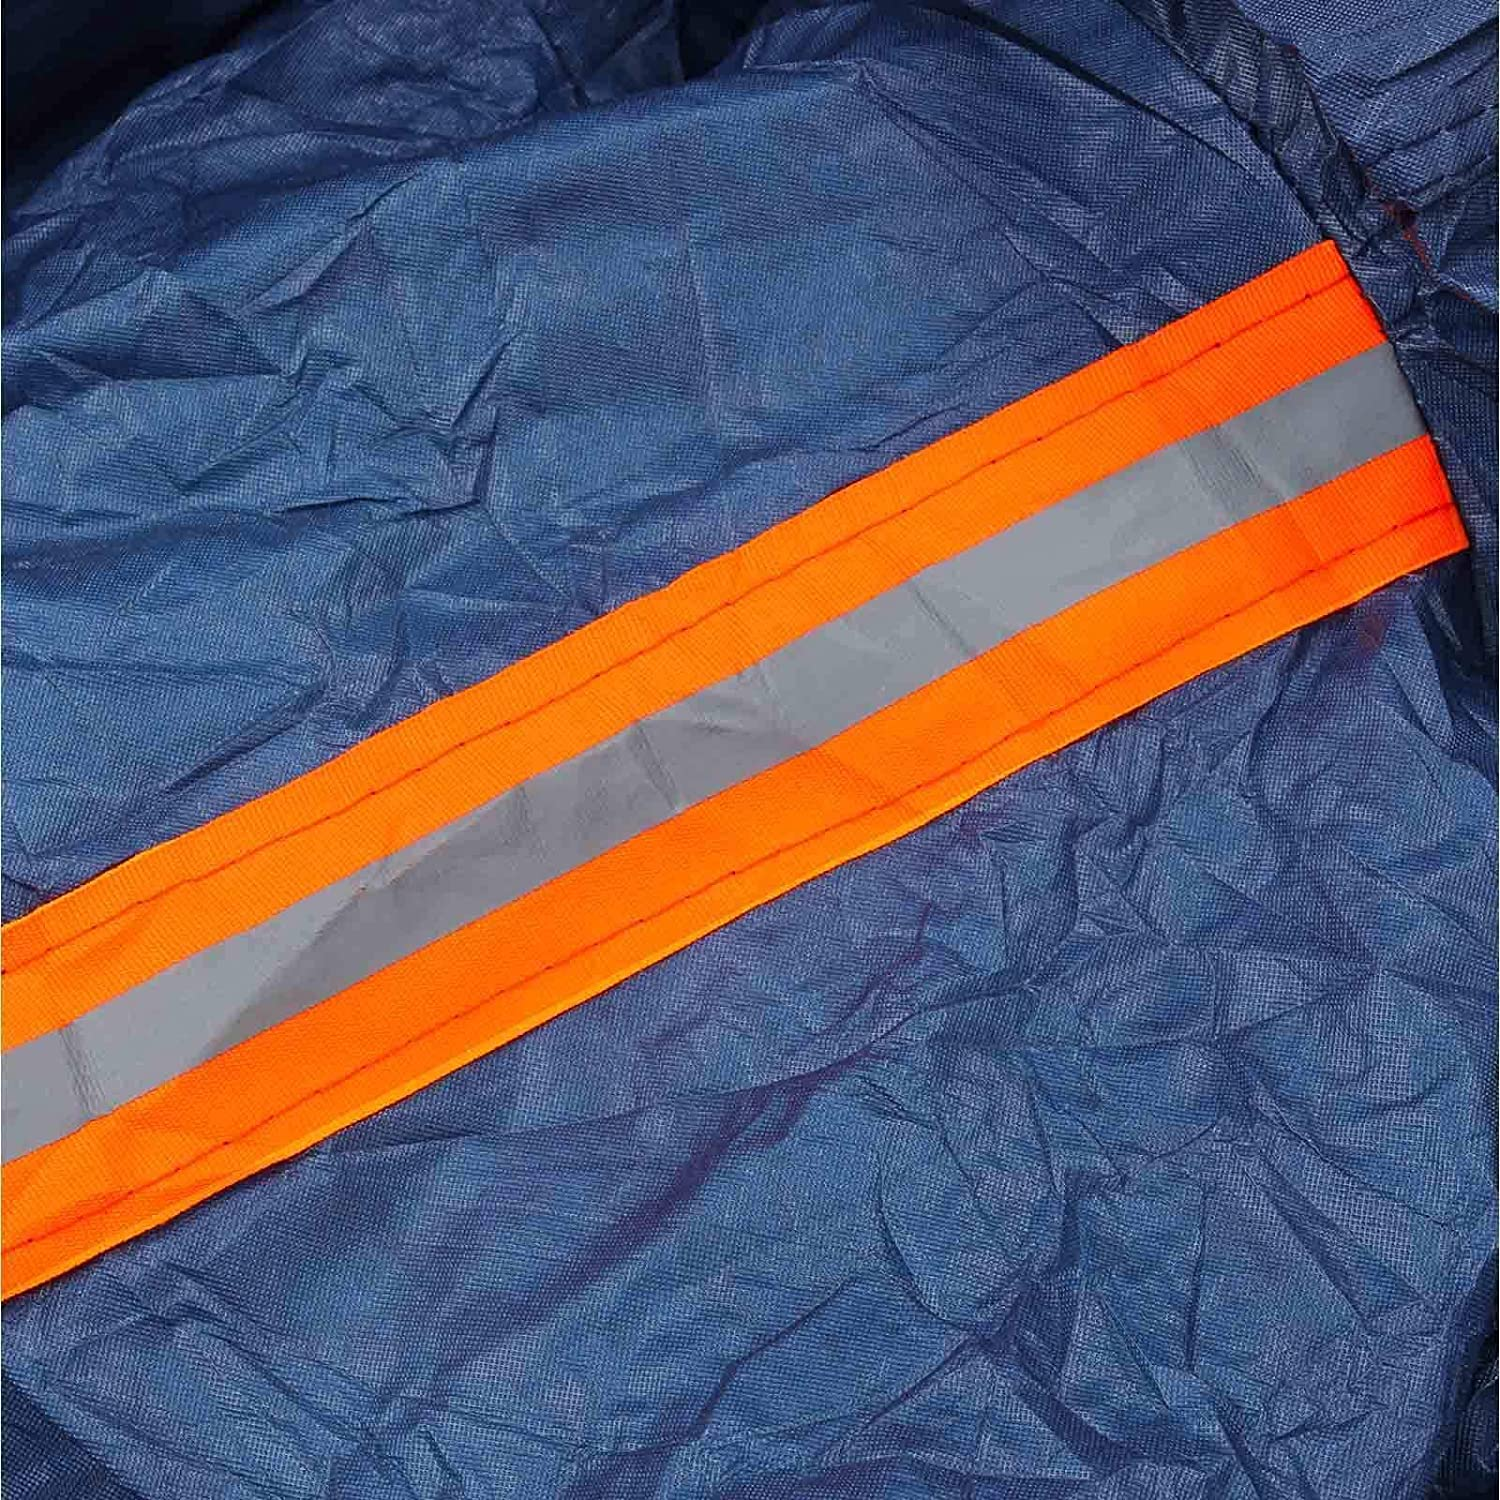 Full Car Covers For Automobiles Waterproof All Weather Sun UV Rain Dust Rain Snow Resistant Protection With Zipper Mirror Pocket Fit Audi A4 RS Acura Chevy Cruze Cadillac Dodge Ford S5